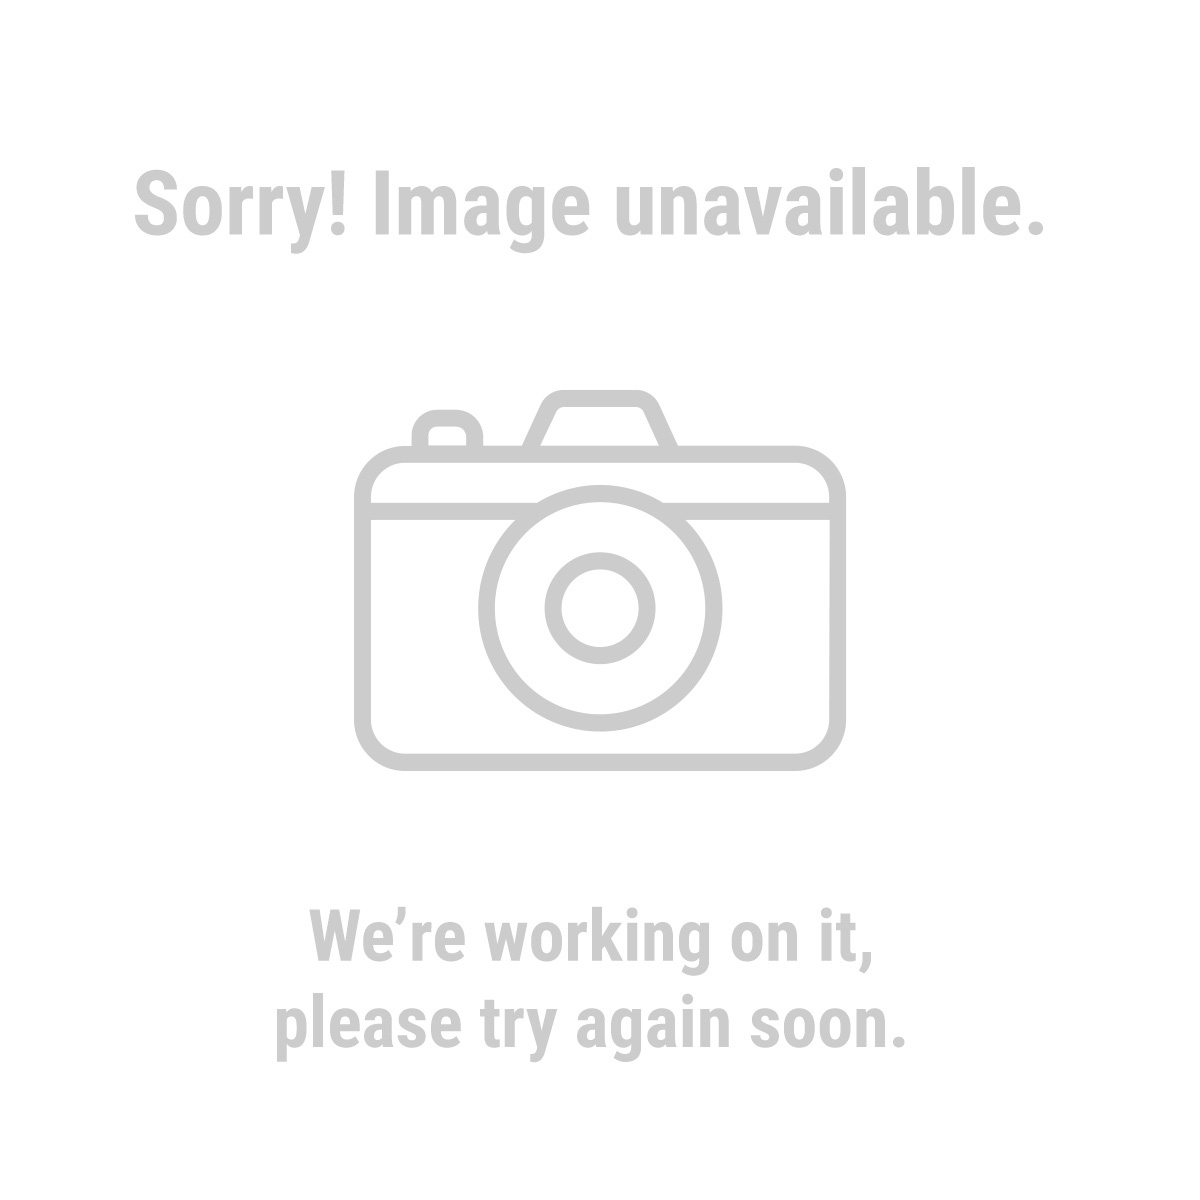 Super Glue Gel, 3 Pack